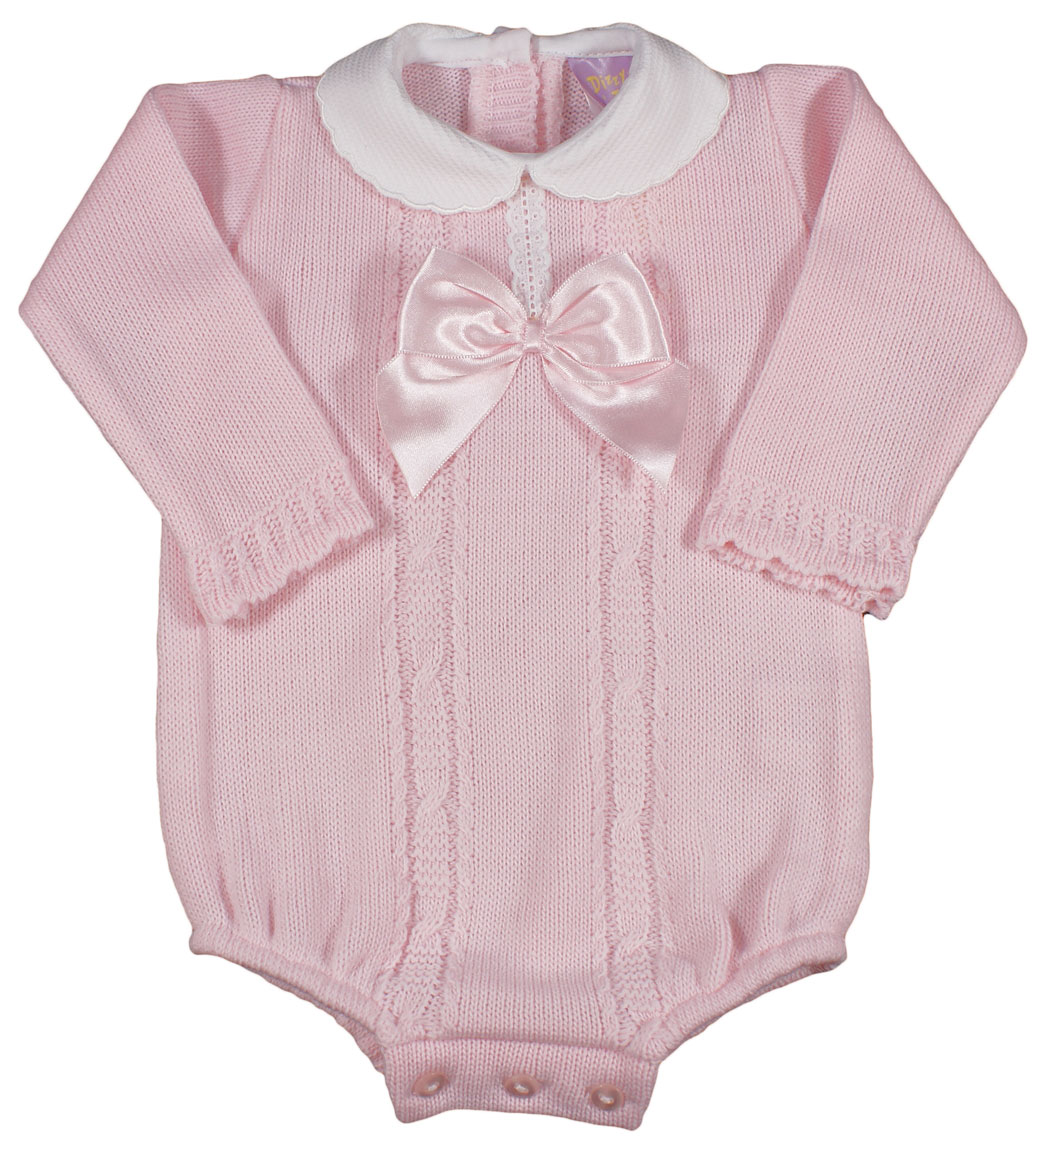 Spanish Style Long Sleeve Baby Pink Knitted Romper